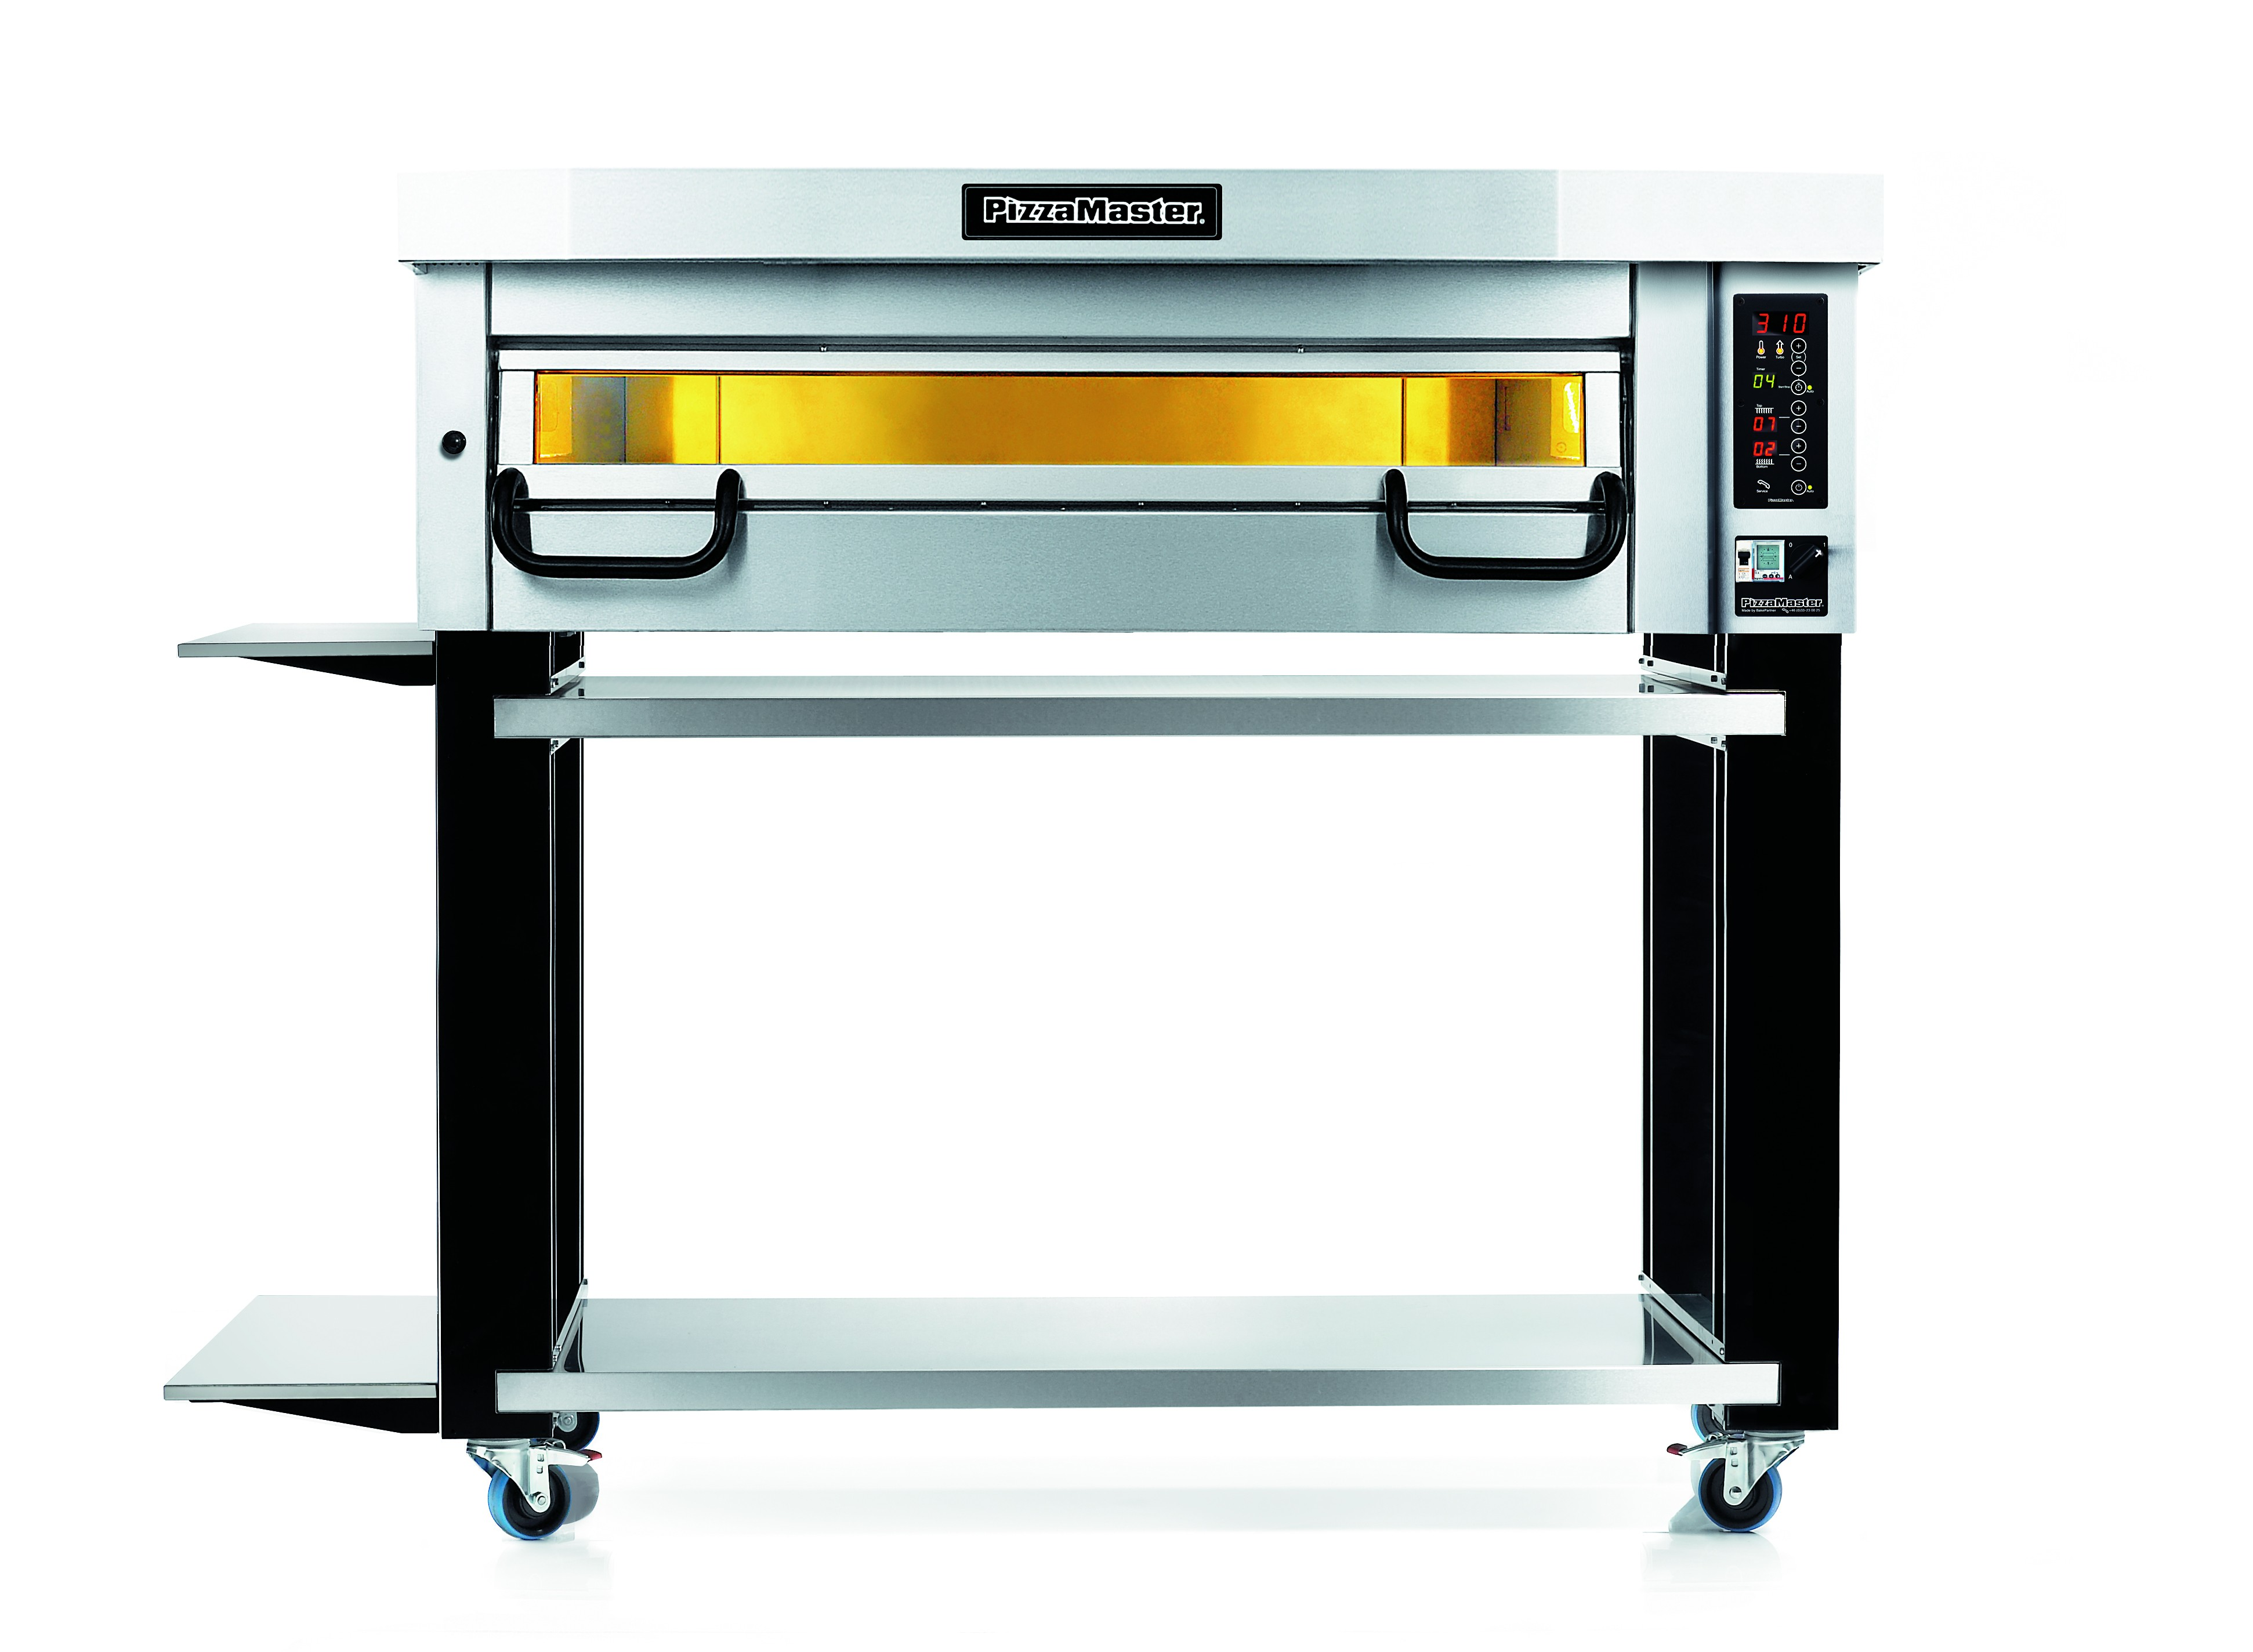 Pizzaahi PizzaMaster PM 721E